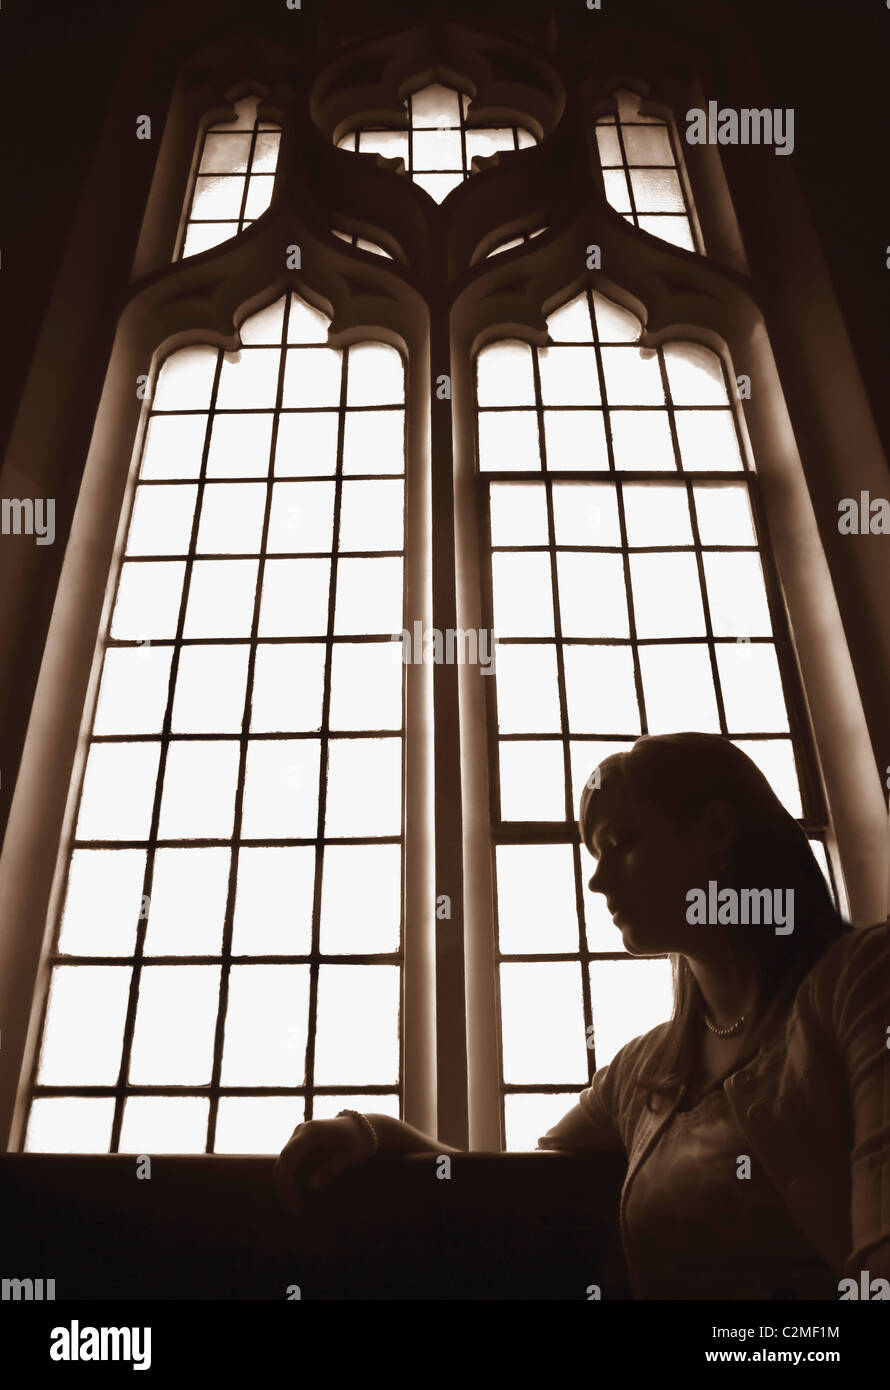 Silhouette of the holy cross on background of storm clouds stock - Silhouette Of Woman In Front Of Church Window Stock Image